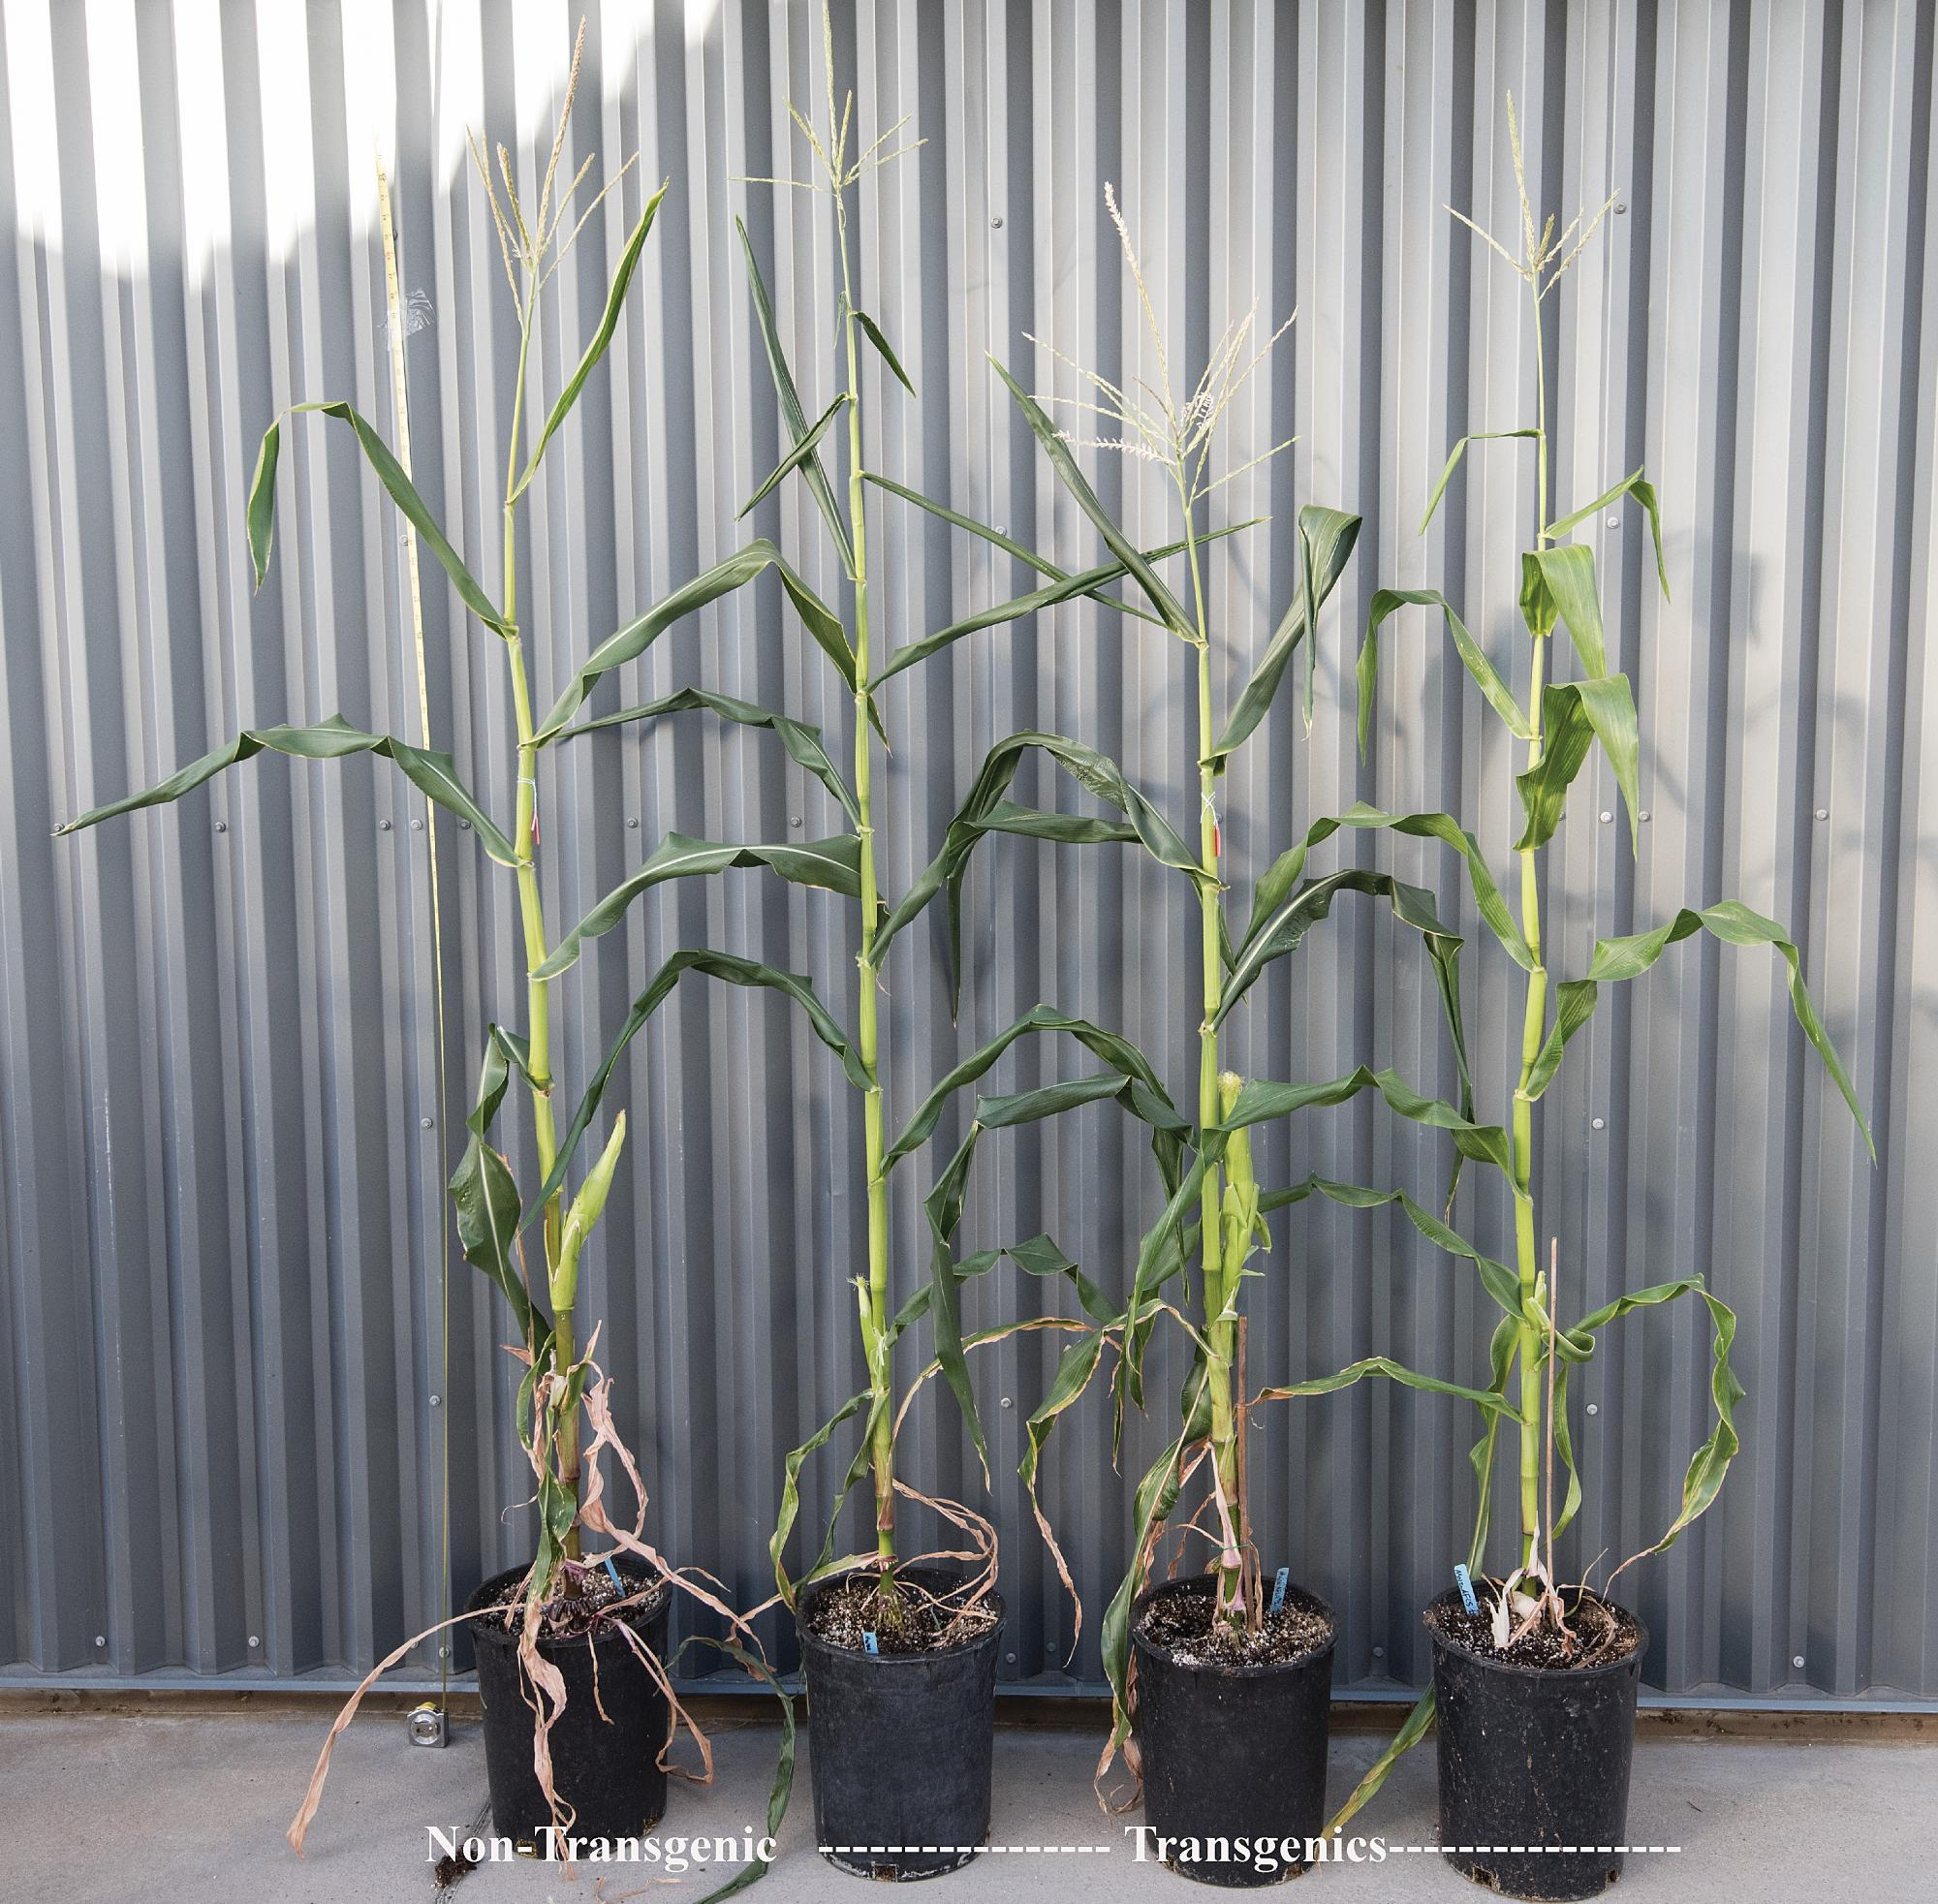 The three transgenic corn plants appear comparable in the non-transgenic control plant.